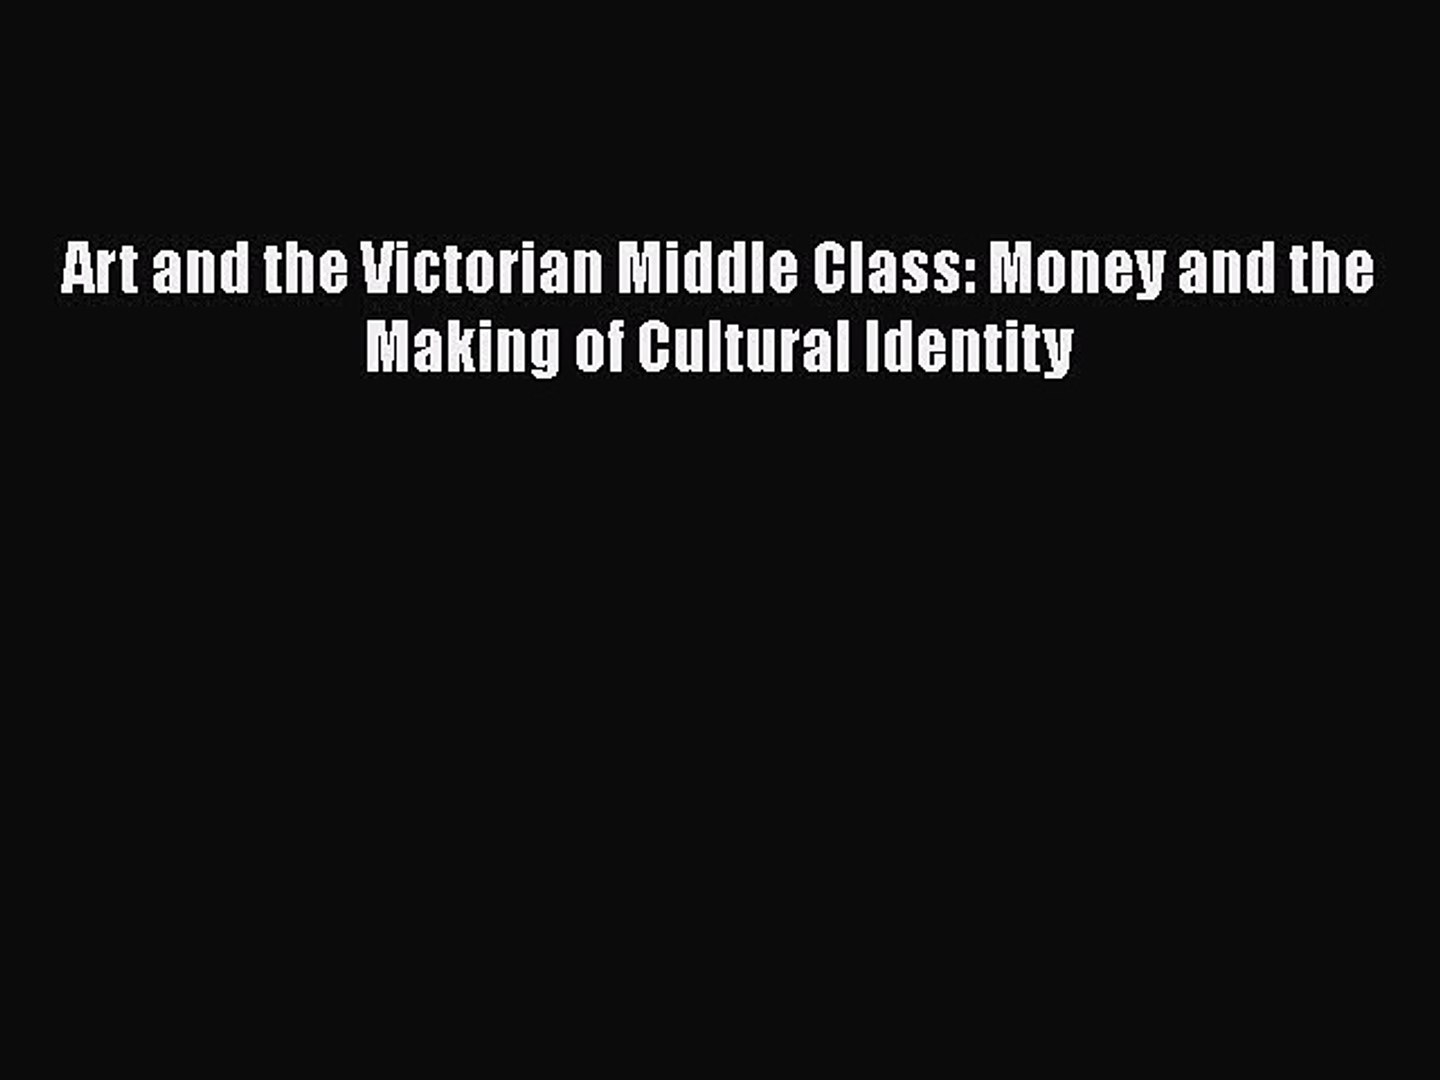 PDF Art and the Victorian Middle Class: Money and the Making